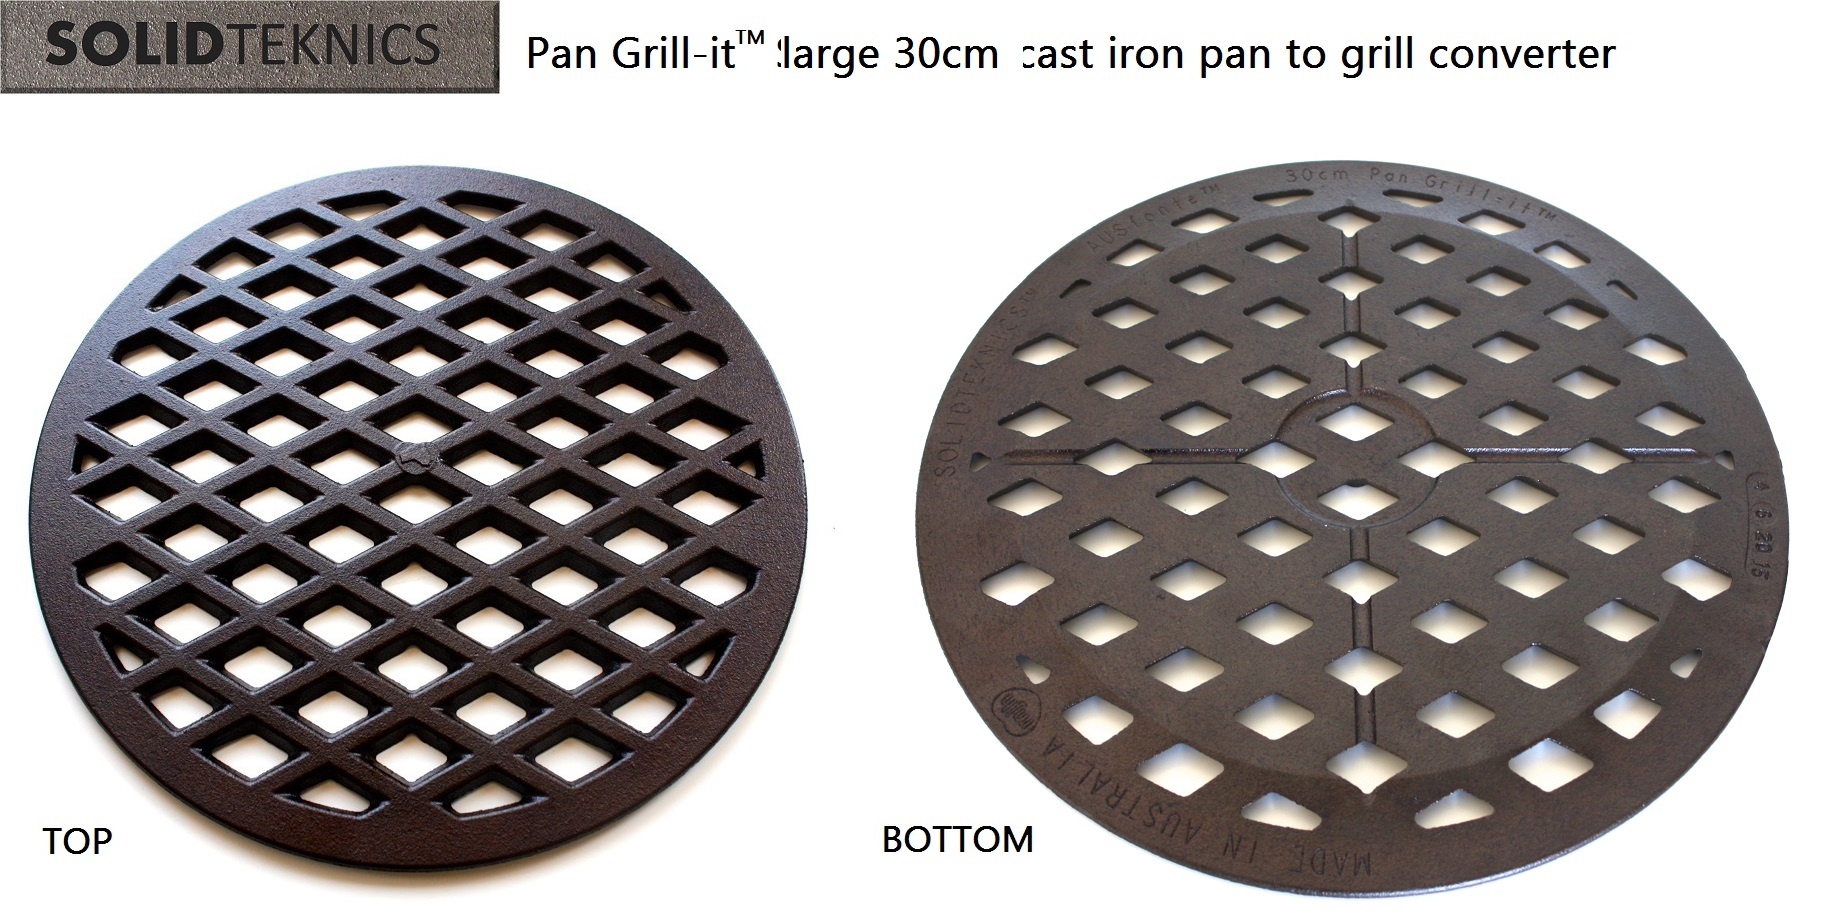 Solidteknics AUSfonte Pan Grill-it Large 30cm cast iron grilling insert back 12-6-15 1200x799.jpg